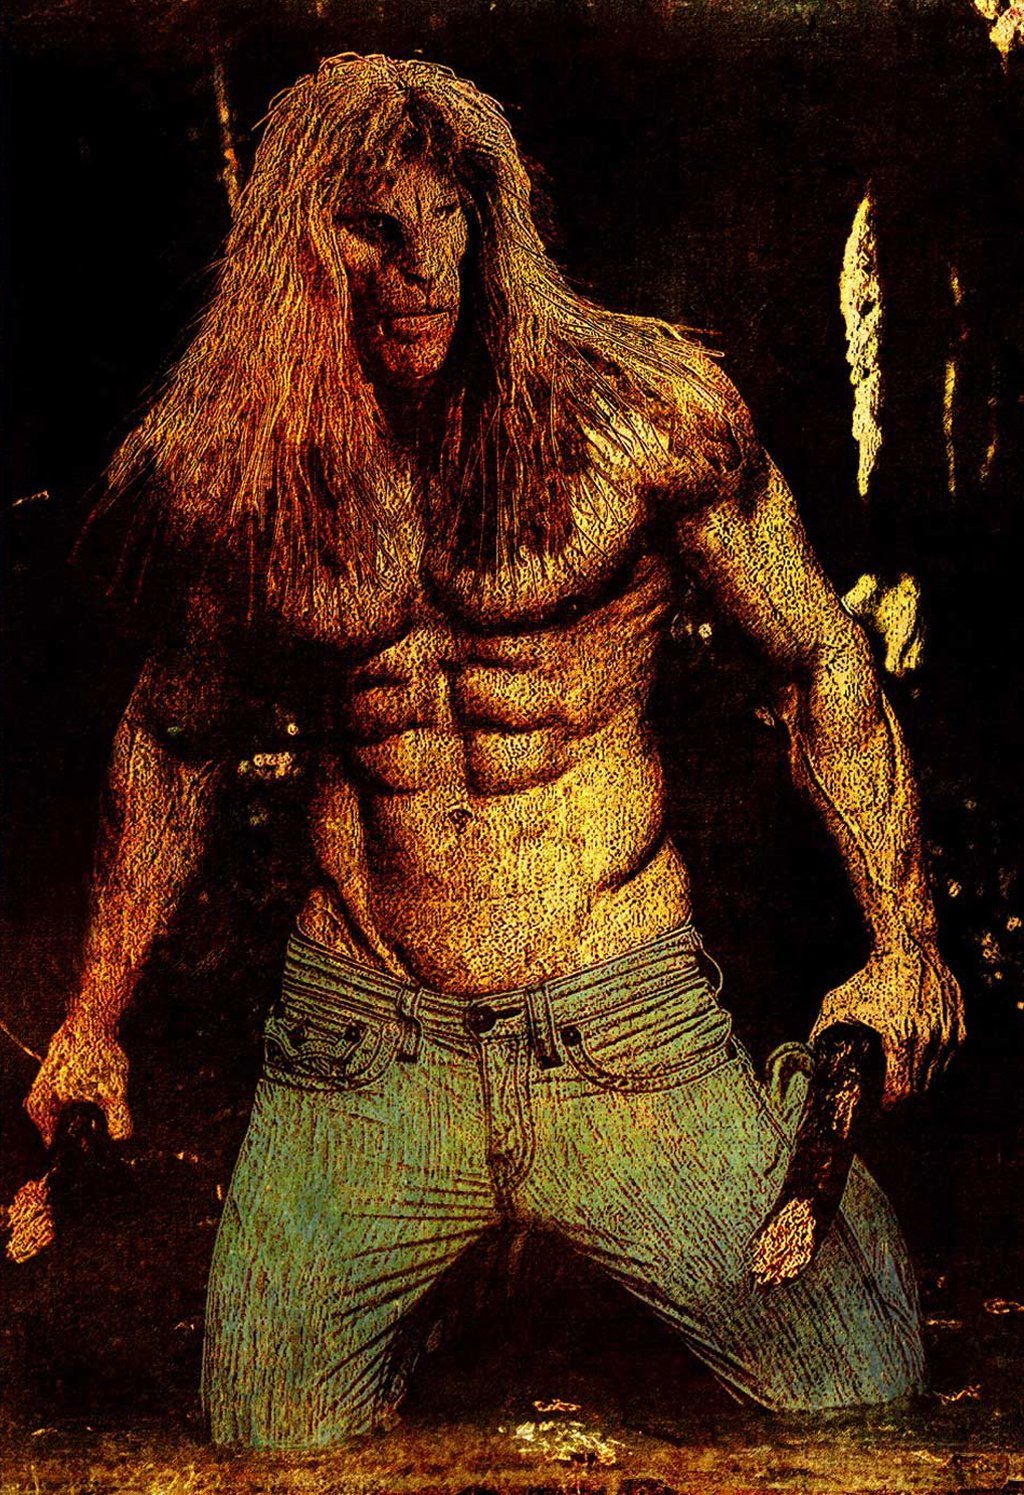 Vincent, shirtless, on his knees in a slightly flooded tunnel, clearing it of broken branches